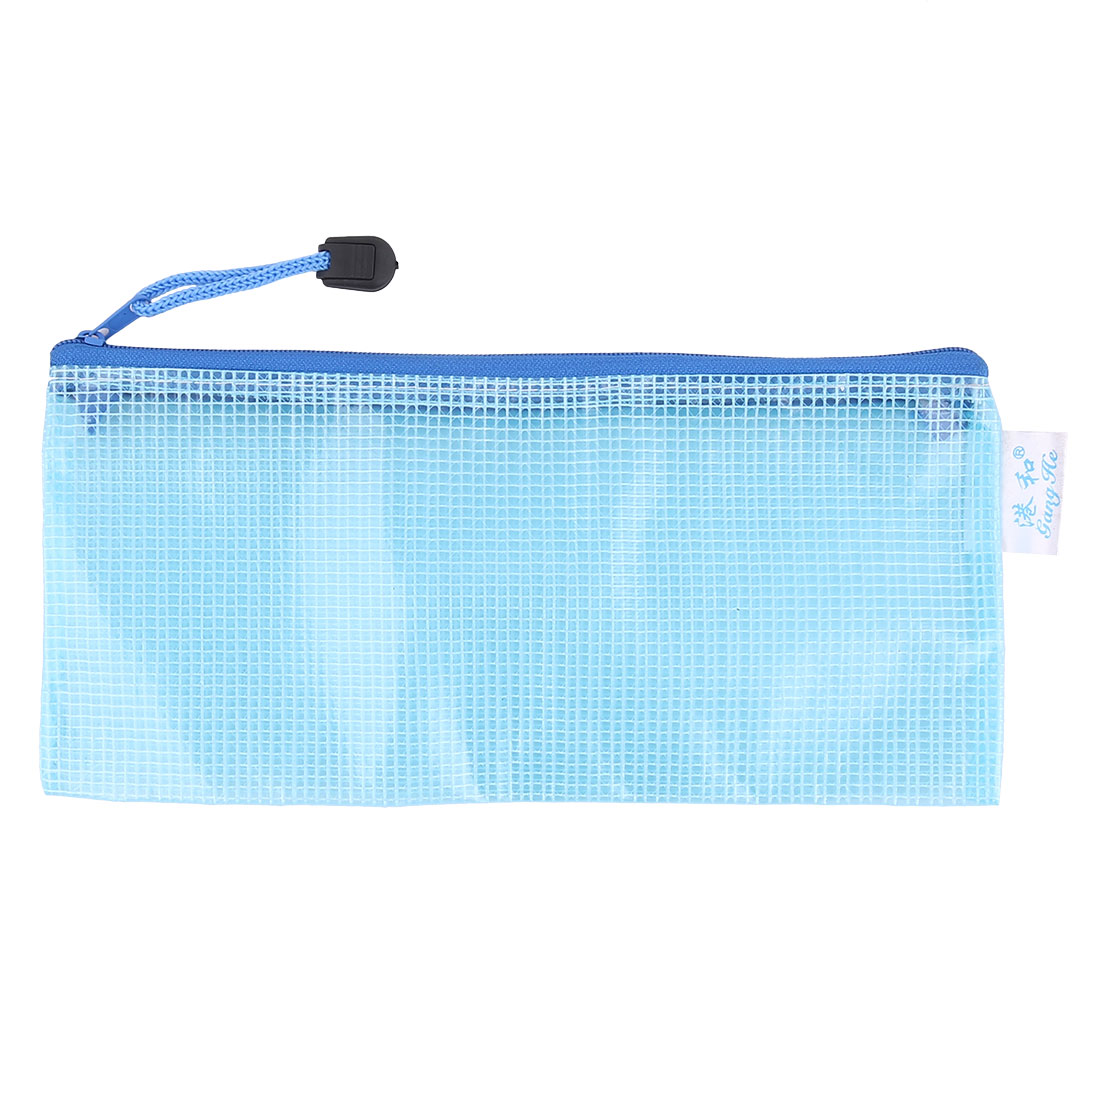 Grid Design Blue Zipper Closure Soft PVC Stationery Pouch Bag